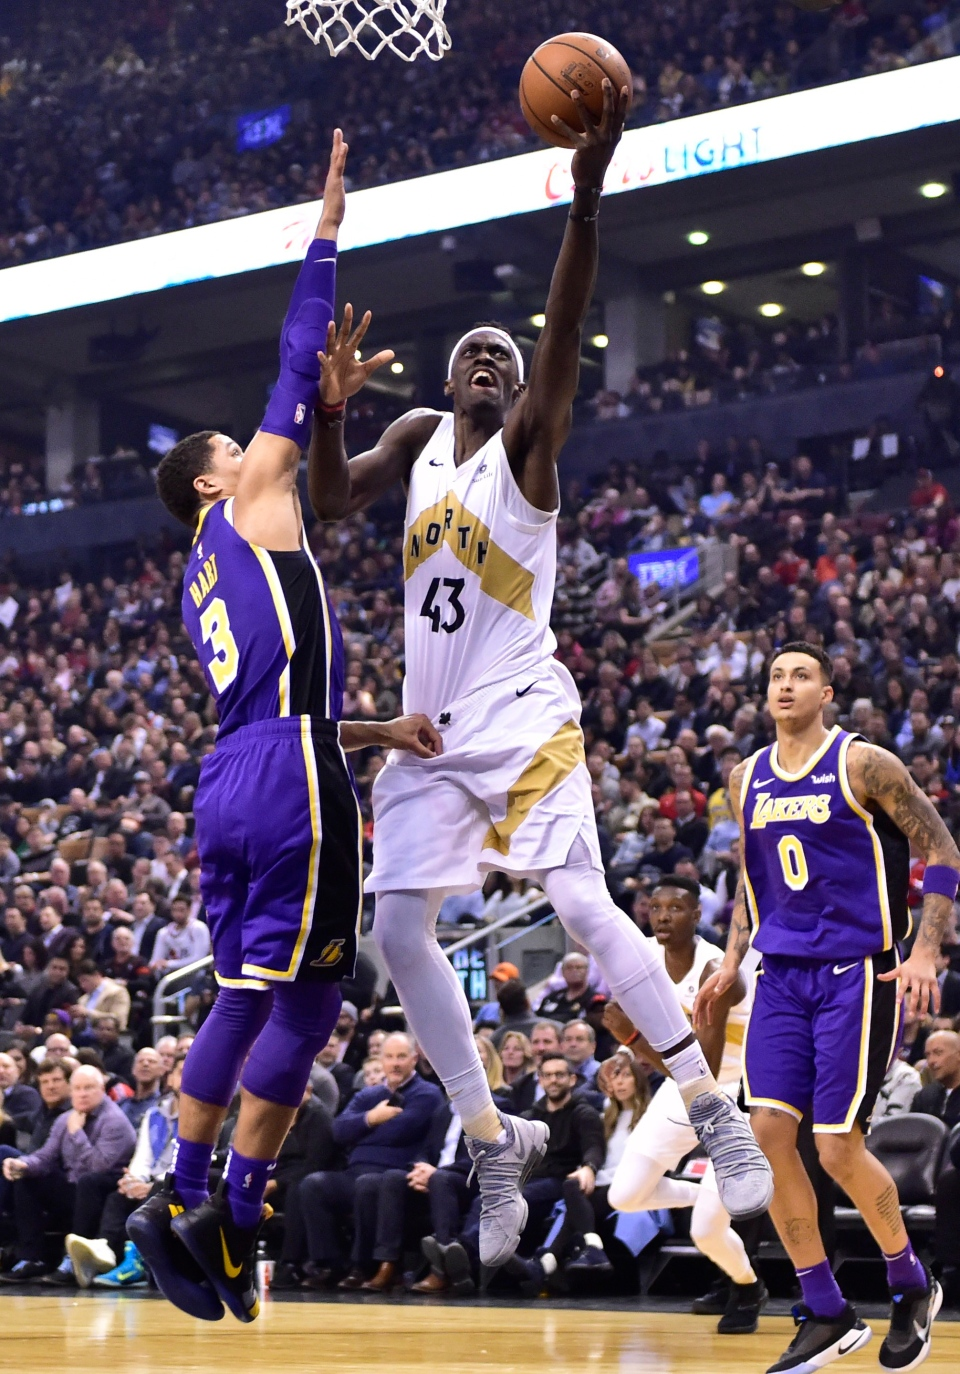 Toronto Raptors forward Pascal Siakam (43) shoots over Los Angeles Lakers guard Josh Hart (3) during first half NBA basketball action in Toronto on Thursday, March 14, 2019. THE CANADIAN PRESS/Frank Gunn